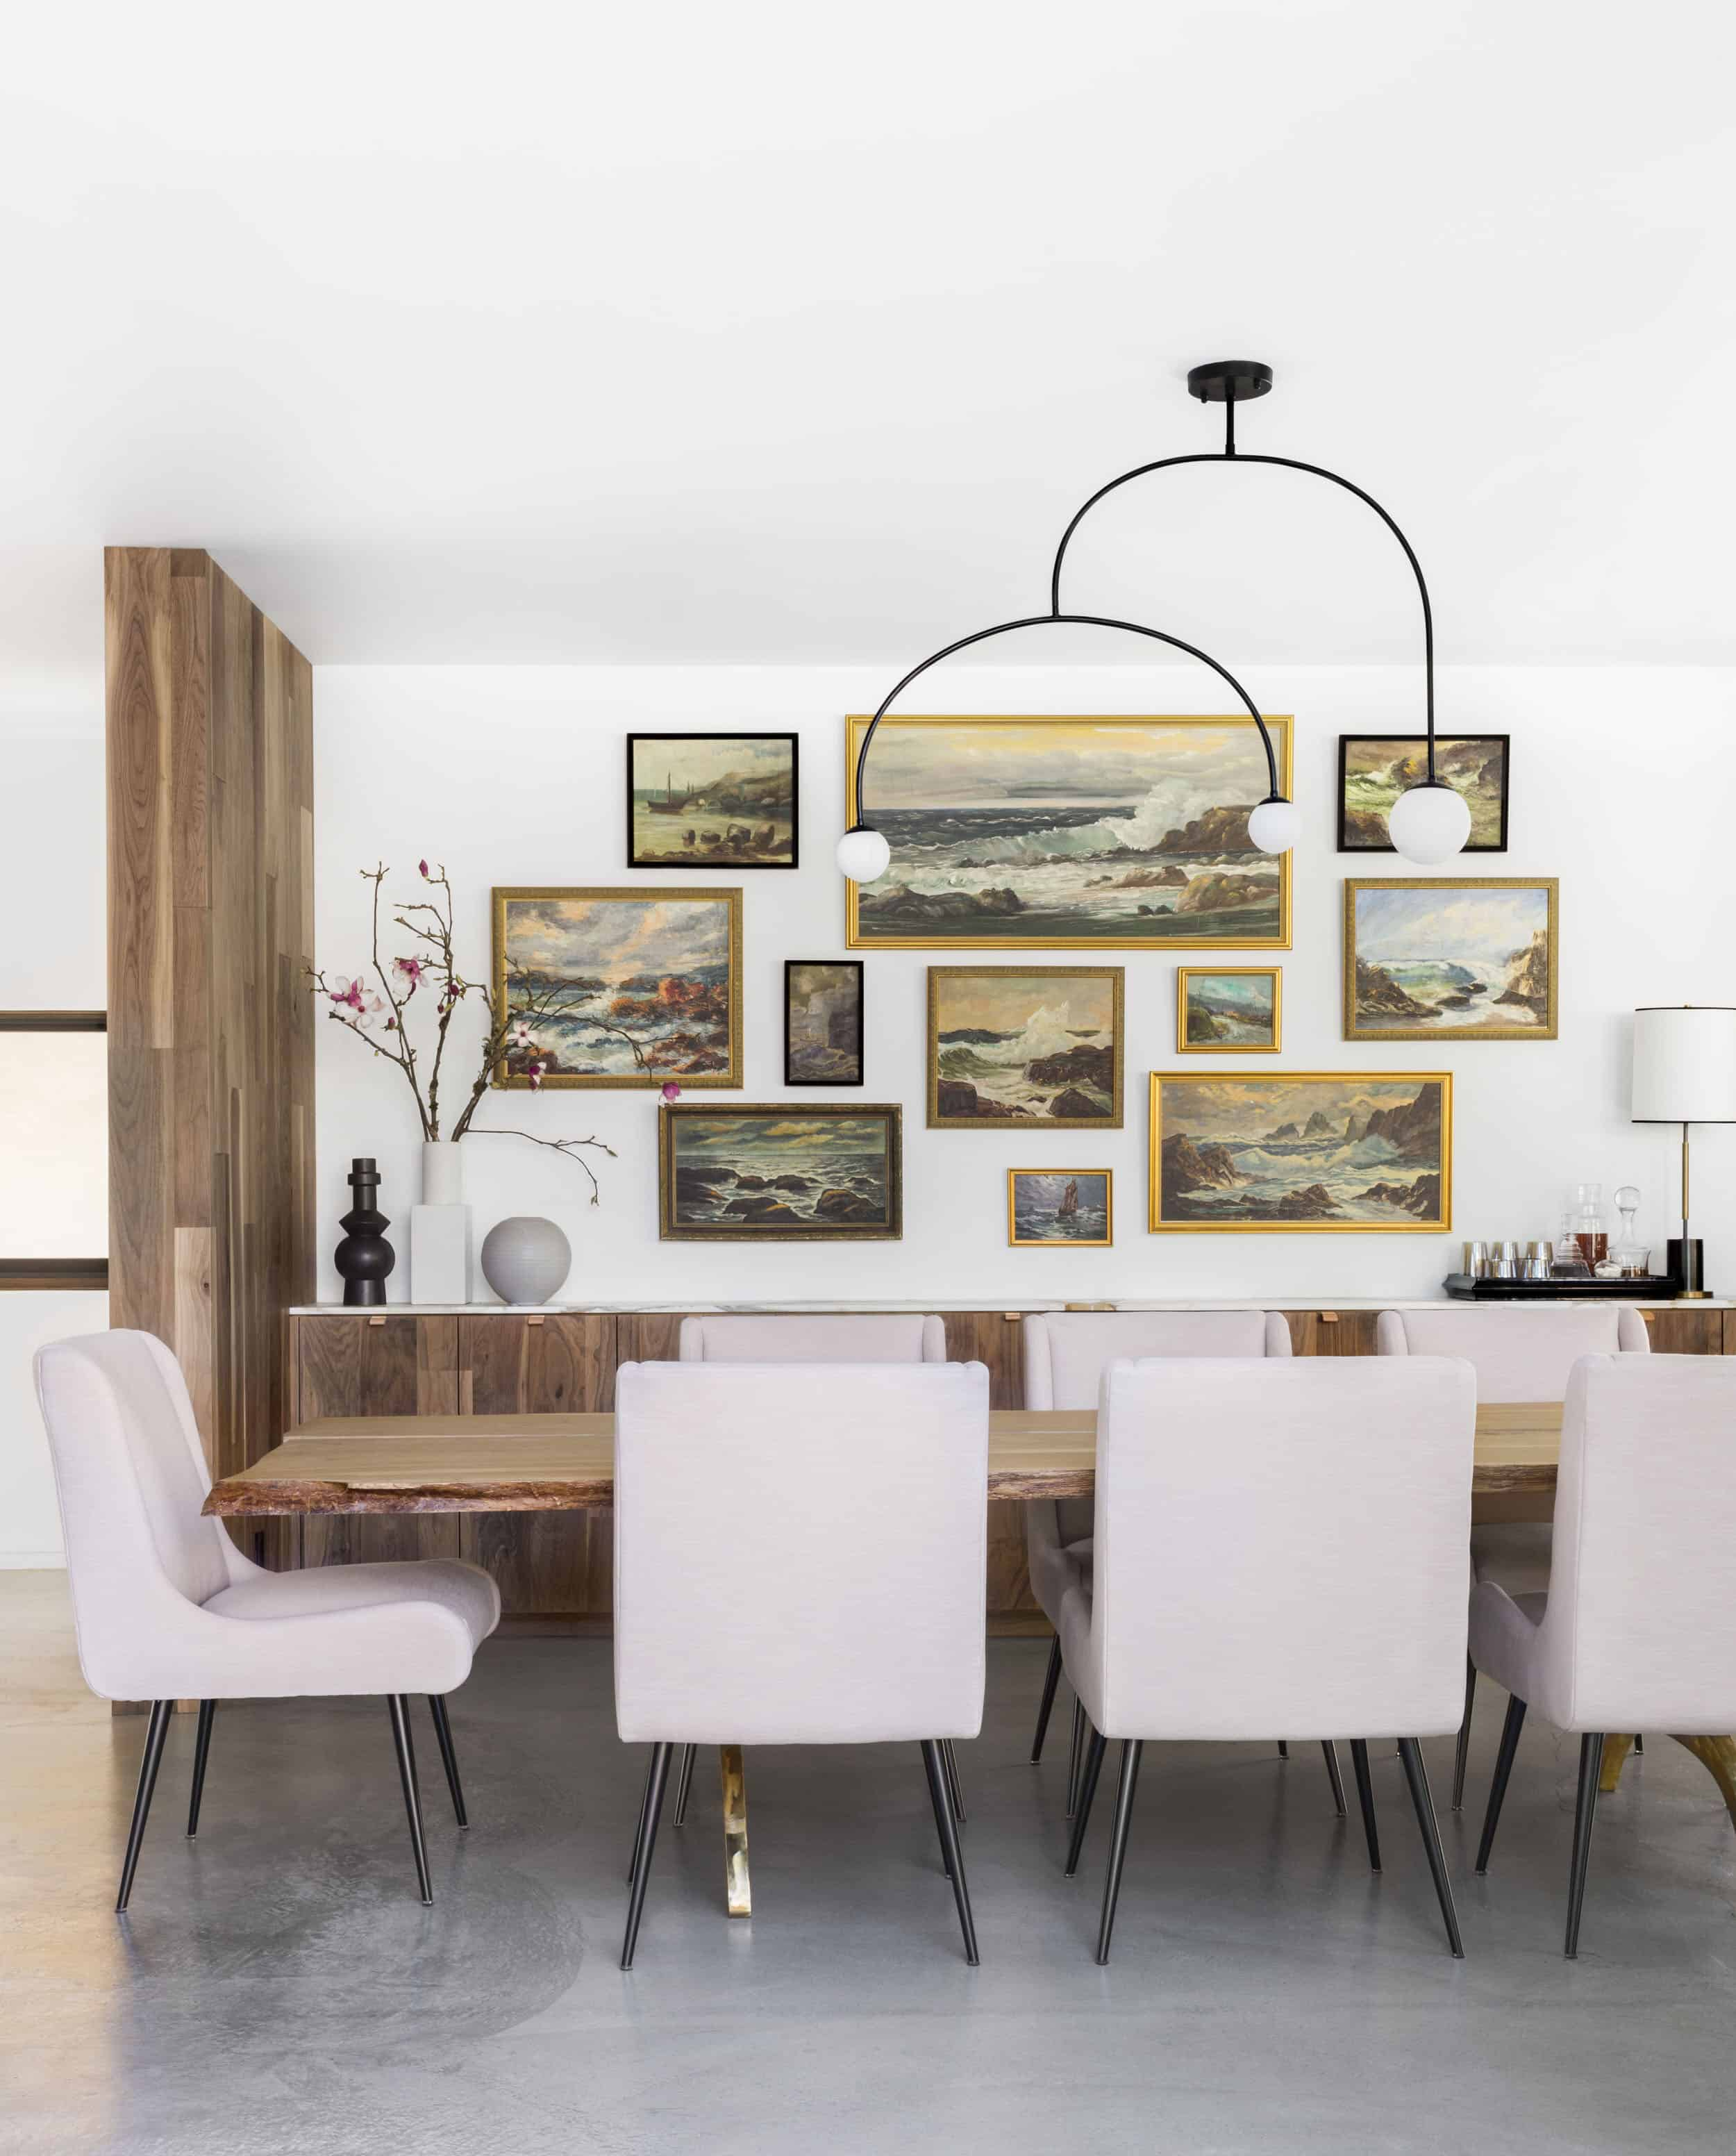 wonderful example of understated, very organic dining room with mid century modern vibe